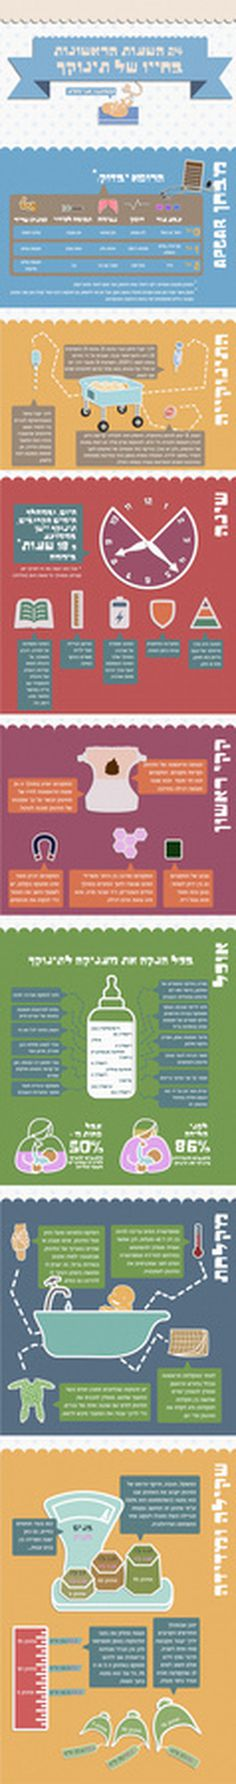 First 24 hours of a newborn (hebrew text) Infographic